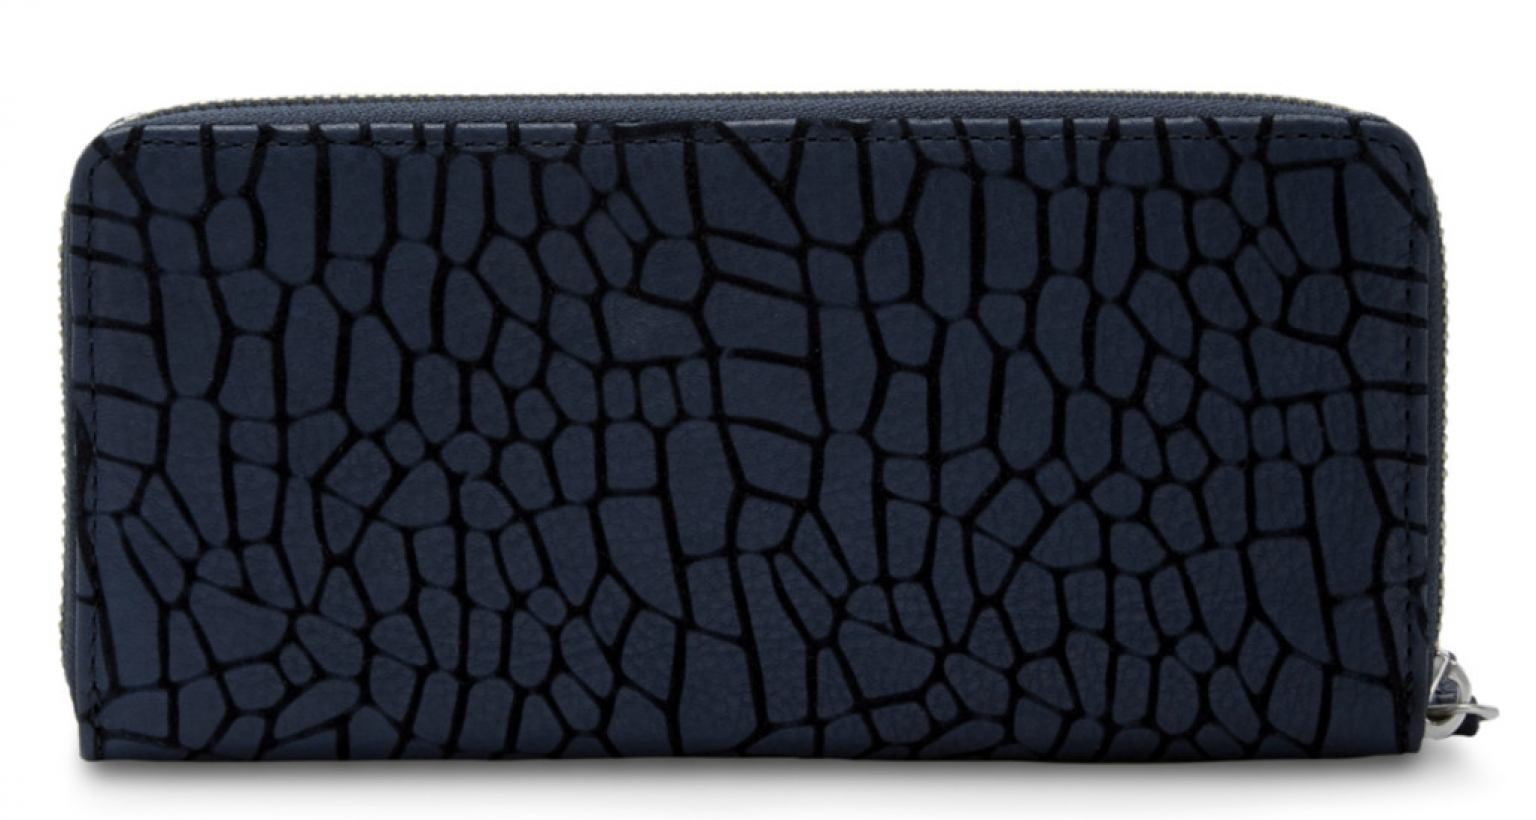 Liebeskind SallyR Geldtasche Zip Dry Earth Geishas Night Blue